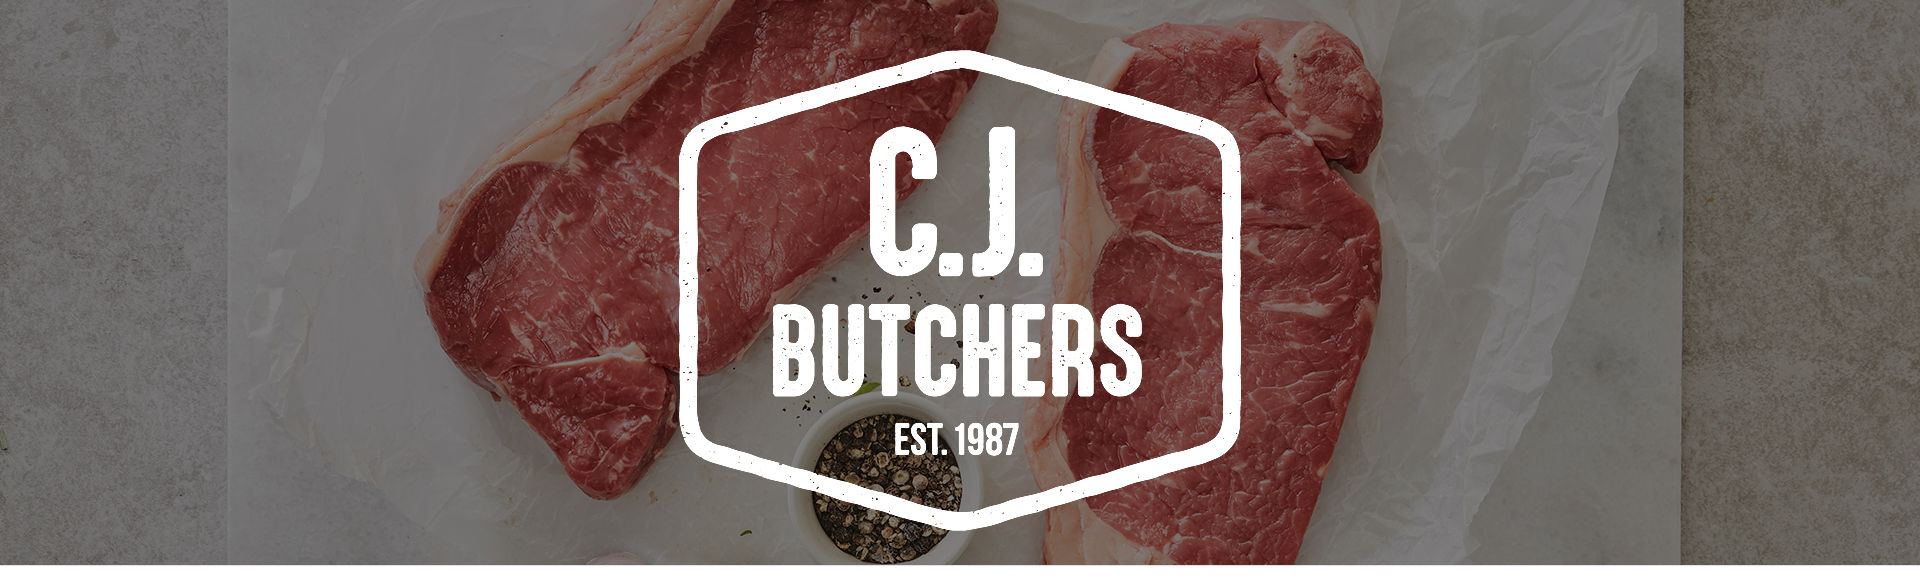 C.J. Butchers Banner